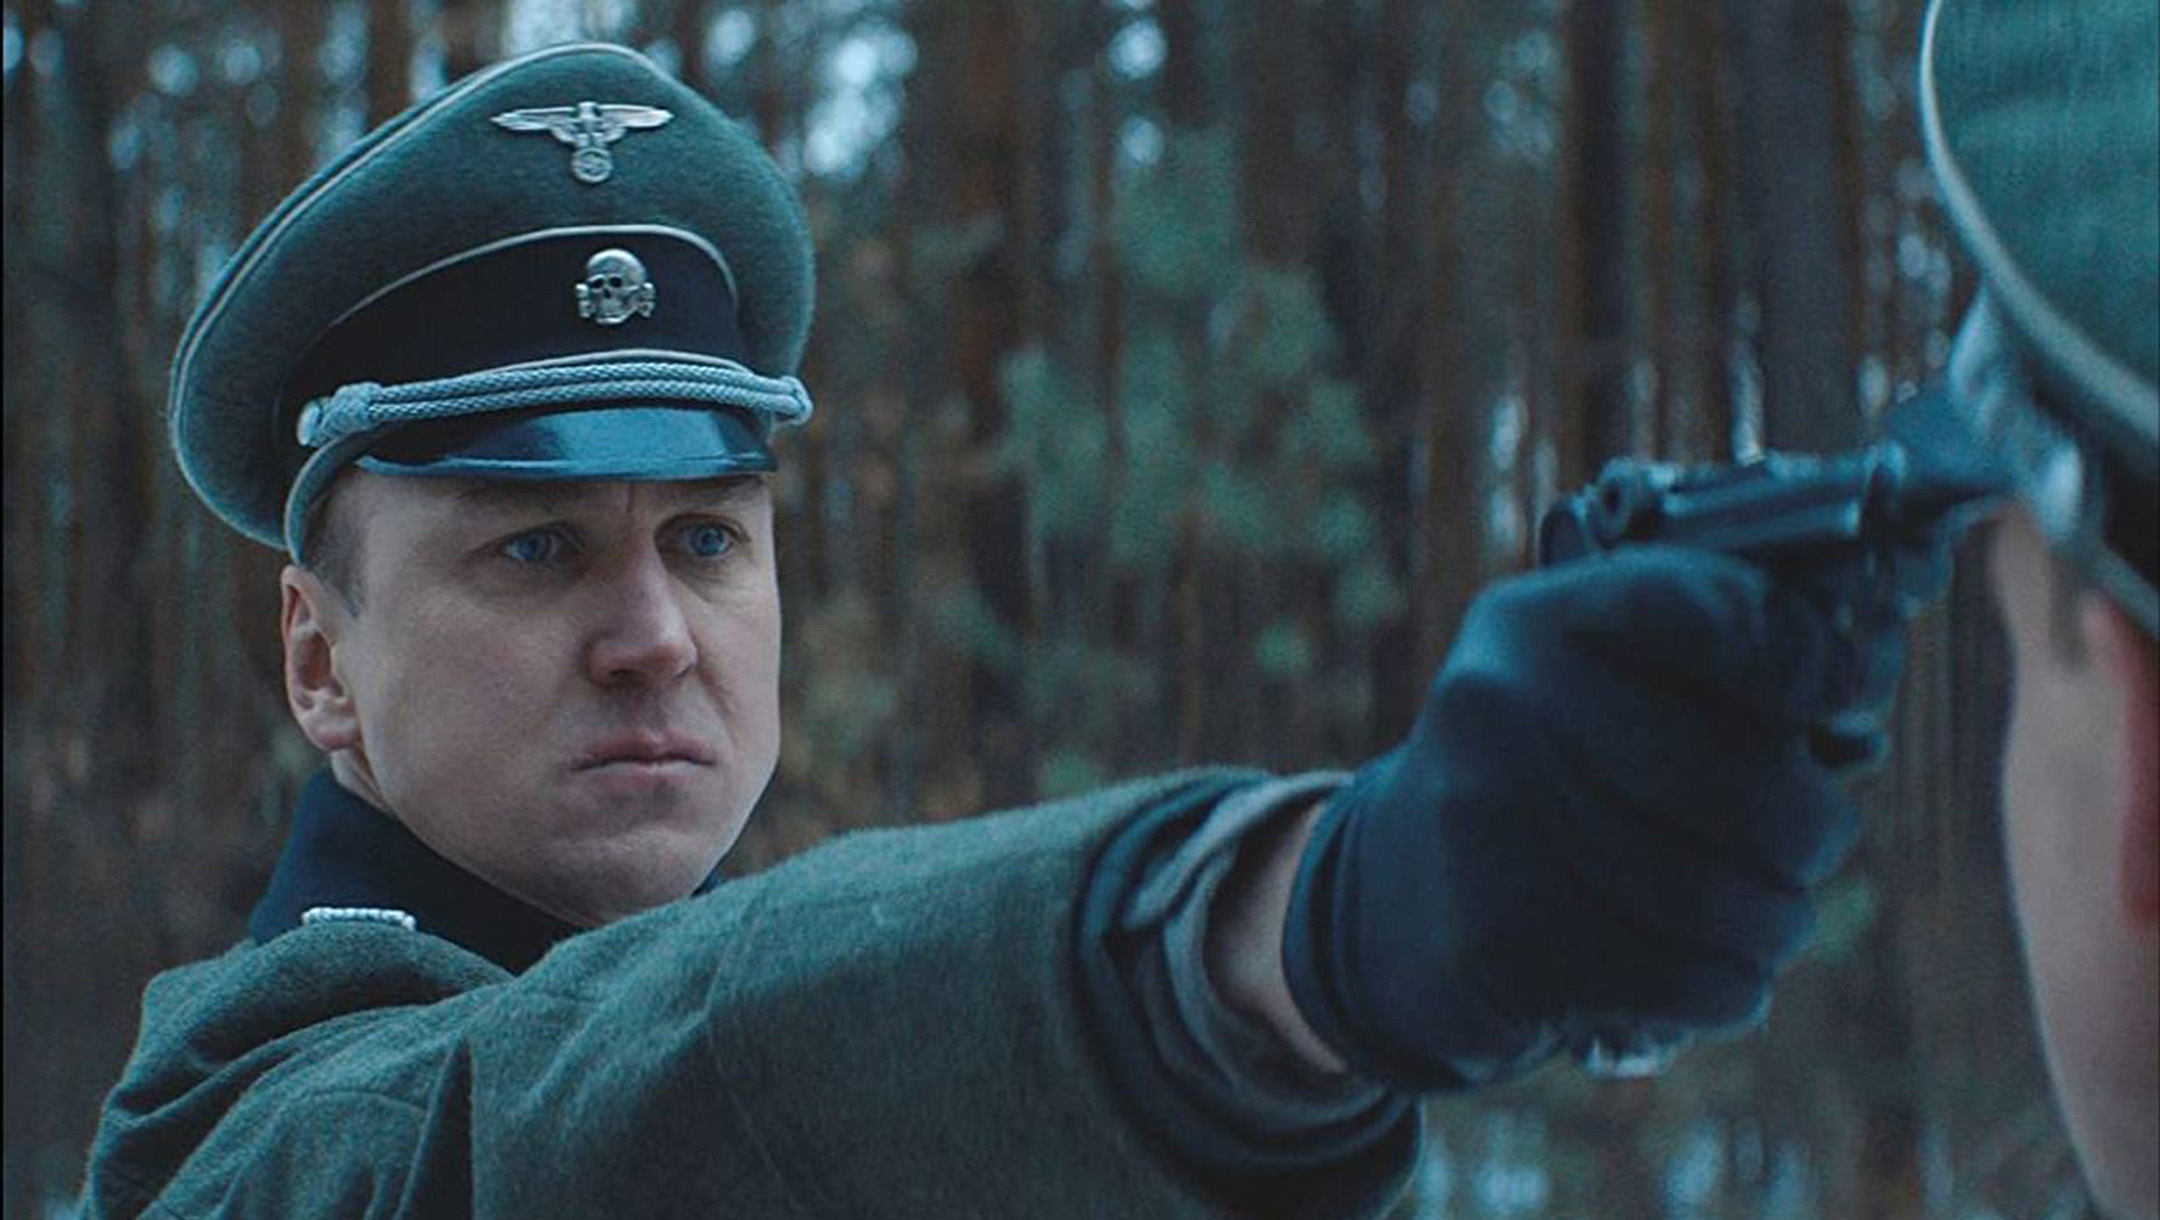 Actor Lars Eidinger portrays a Nazi officer at a concentration camp during filming in Belarus of the film 'Persian Lessons' in 2019. (Courtesy of HyperFilms)